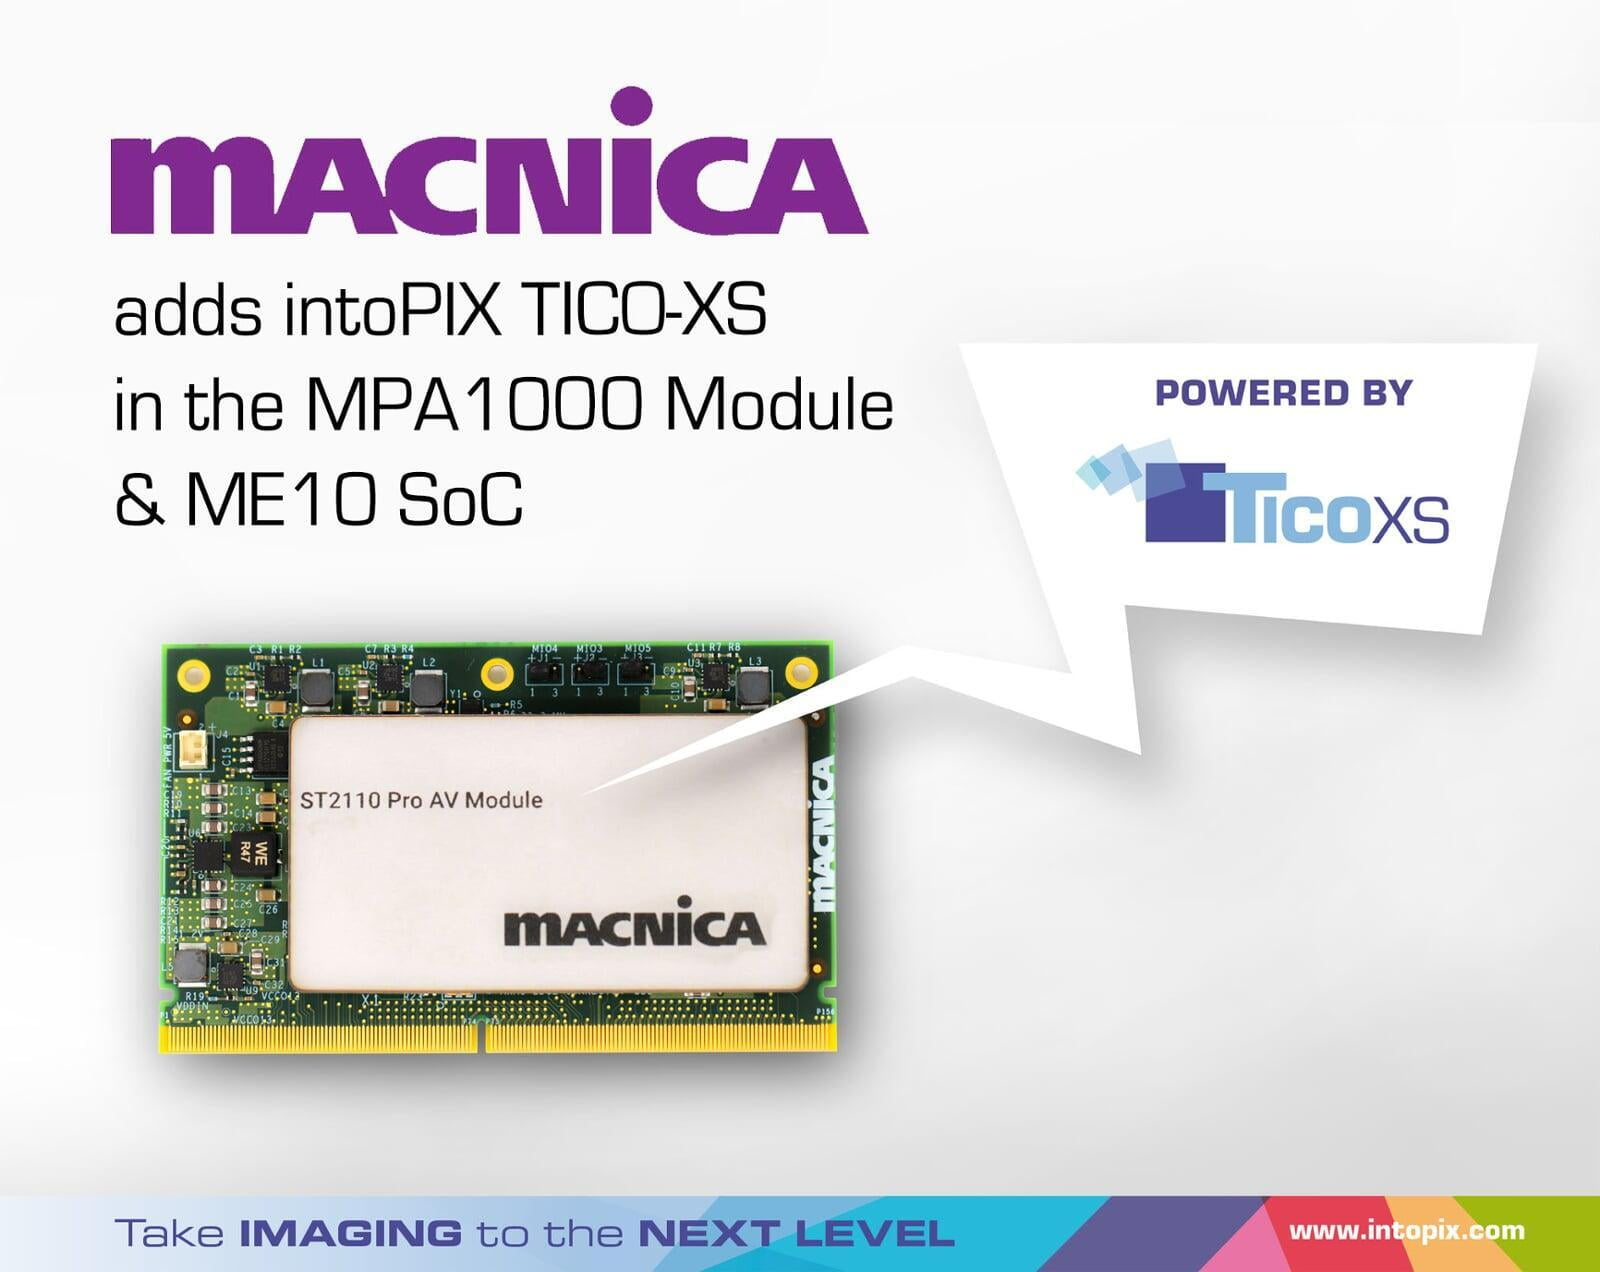 Macnica adopts intoPIX TICO-XS for its 4K ProAV OEM solutions